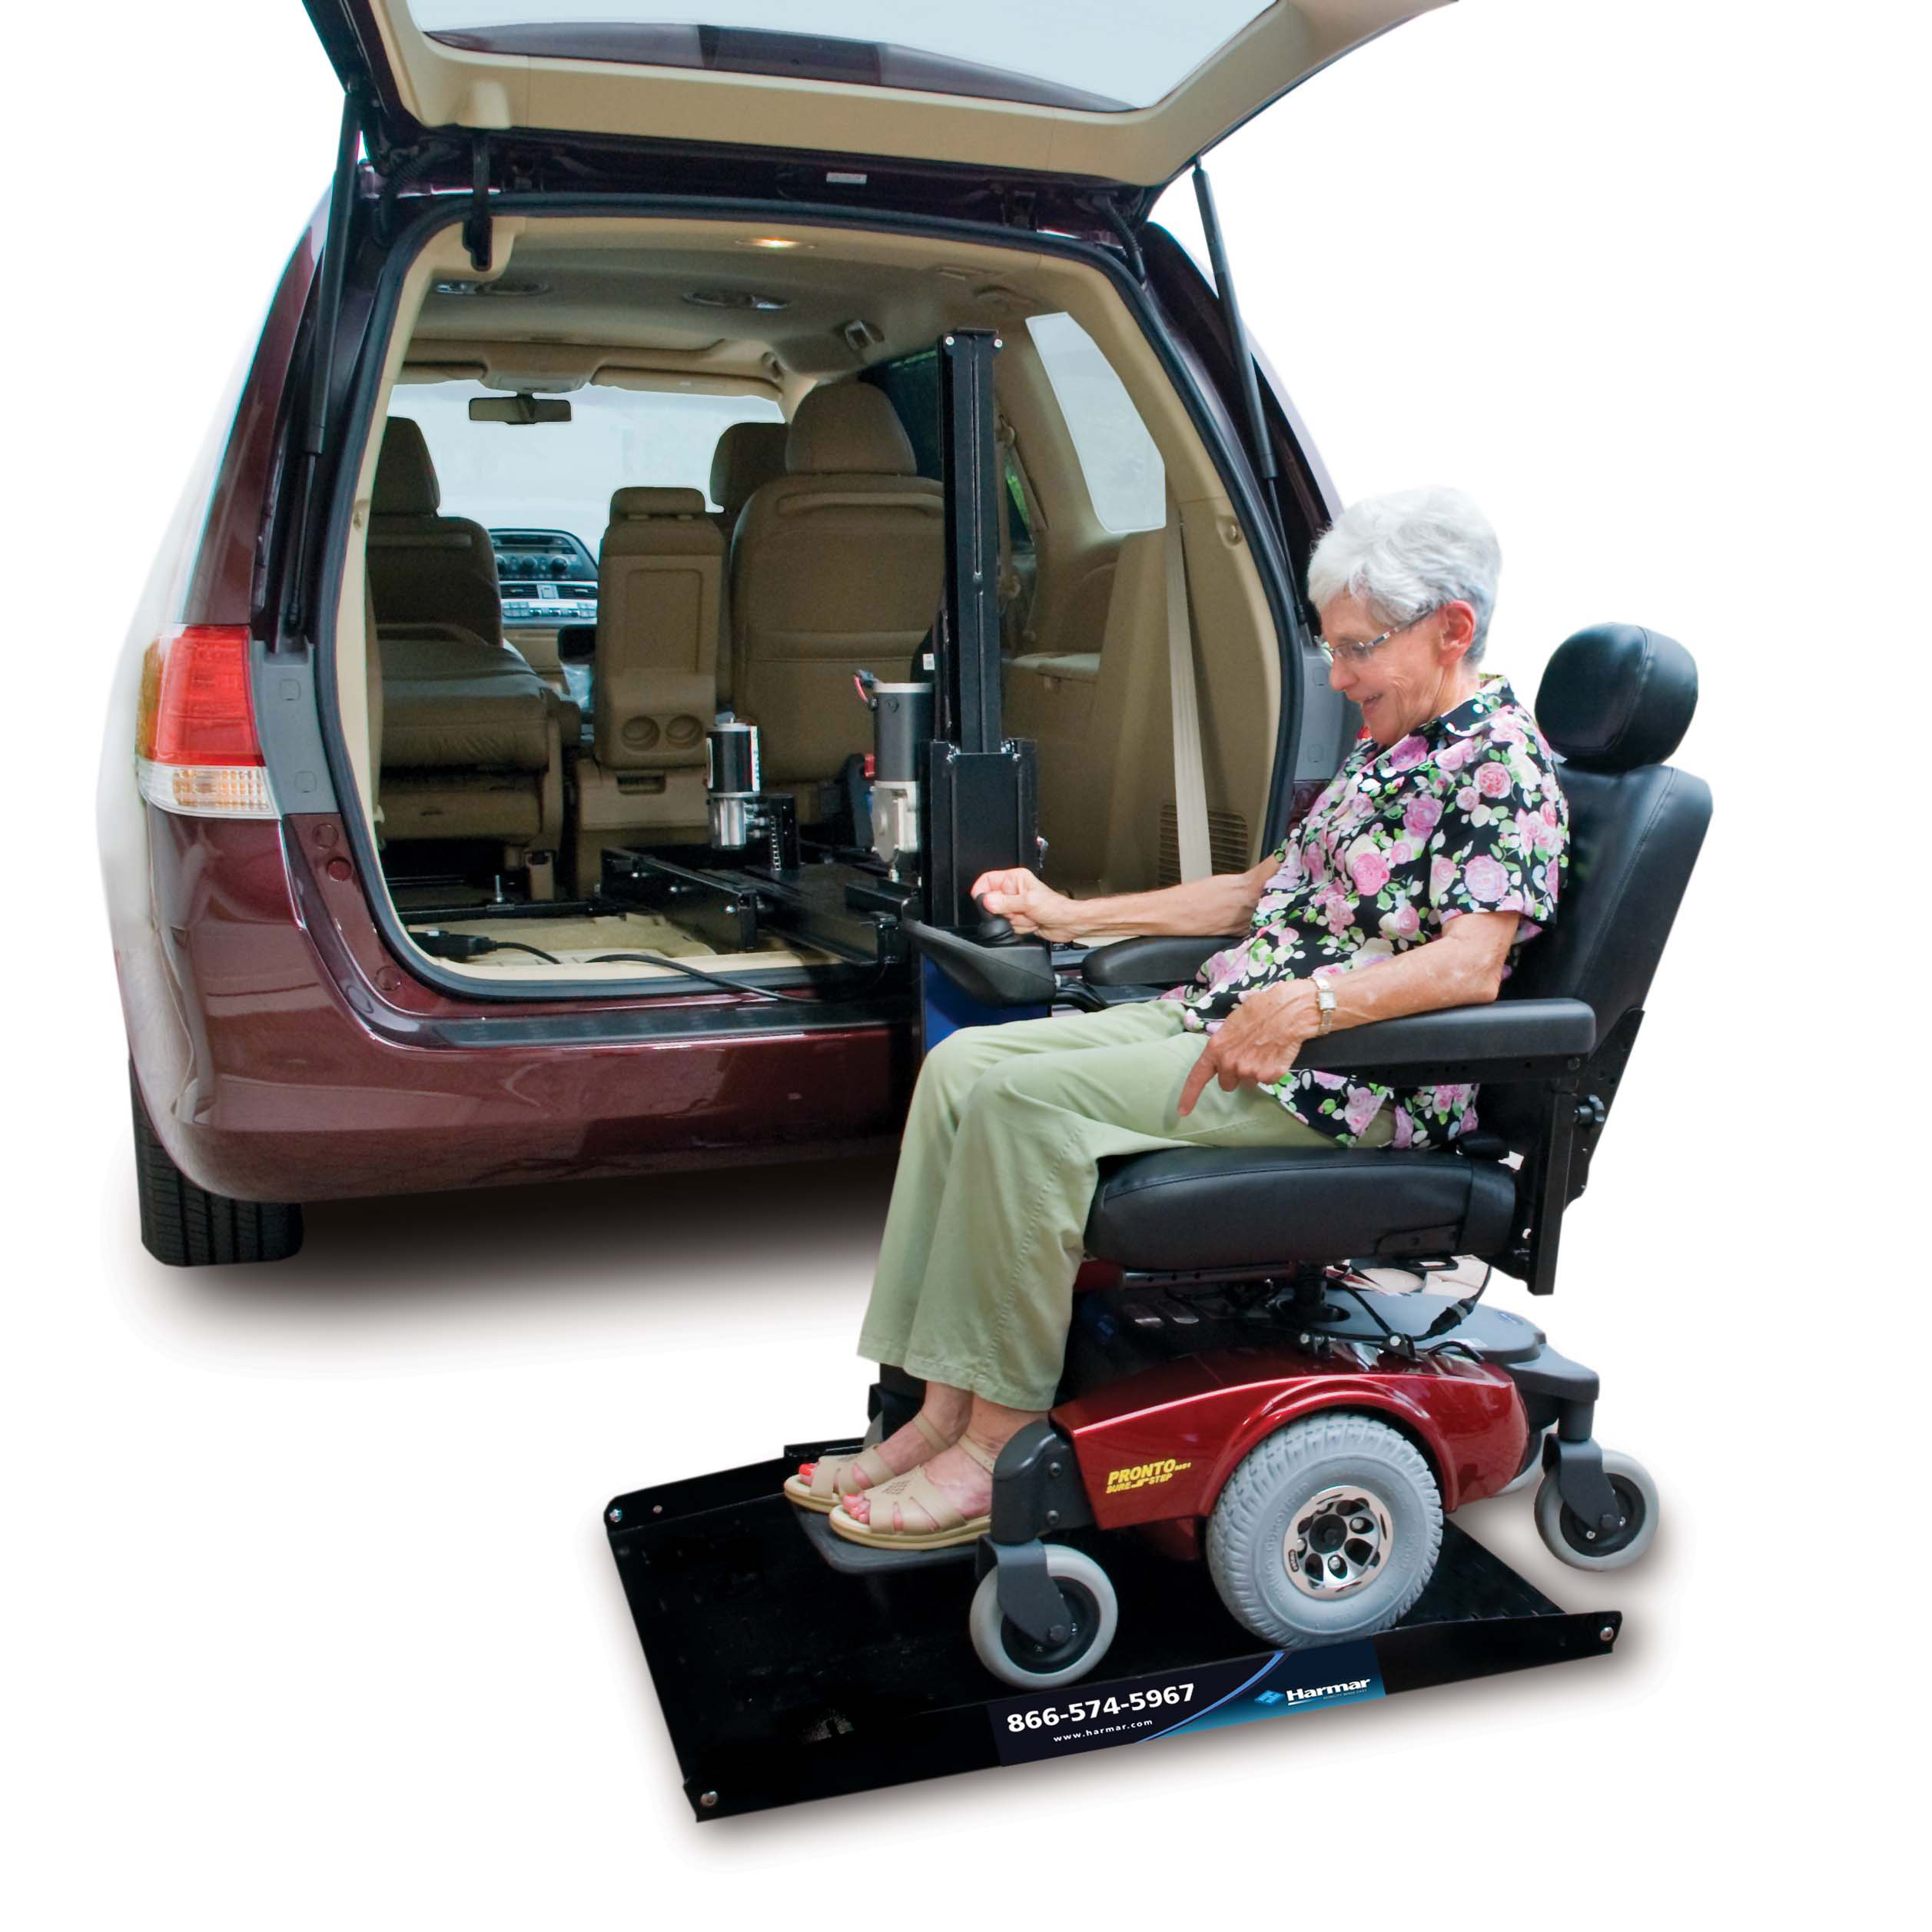 Wheelchair Lift For Car >> Harmar Al600 Hybrid Power Chair And Scooter Lift Harmar Inside